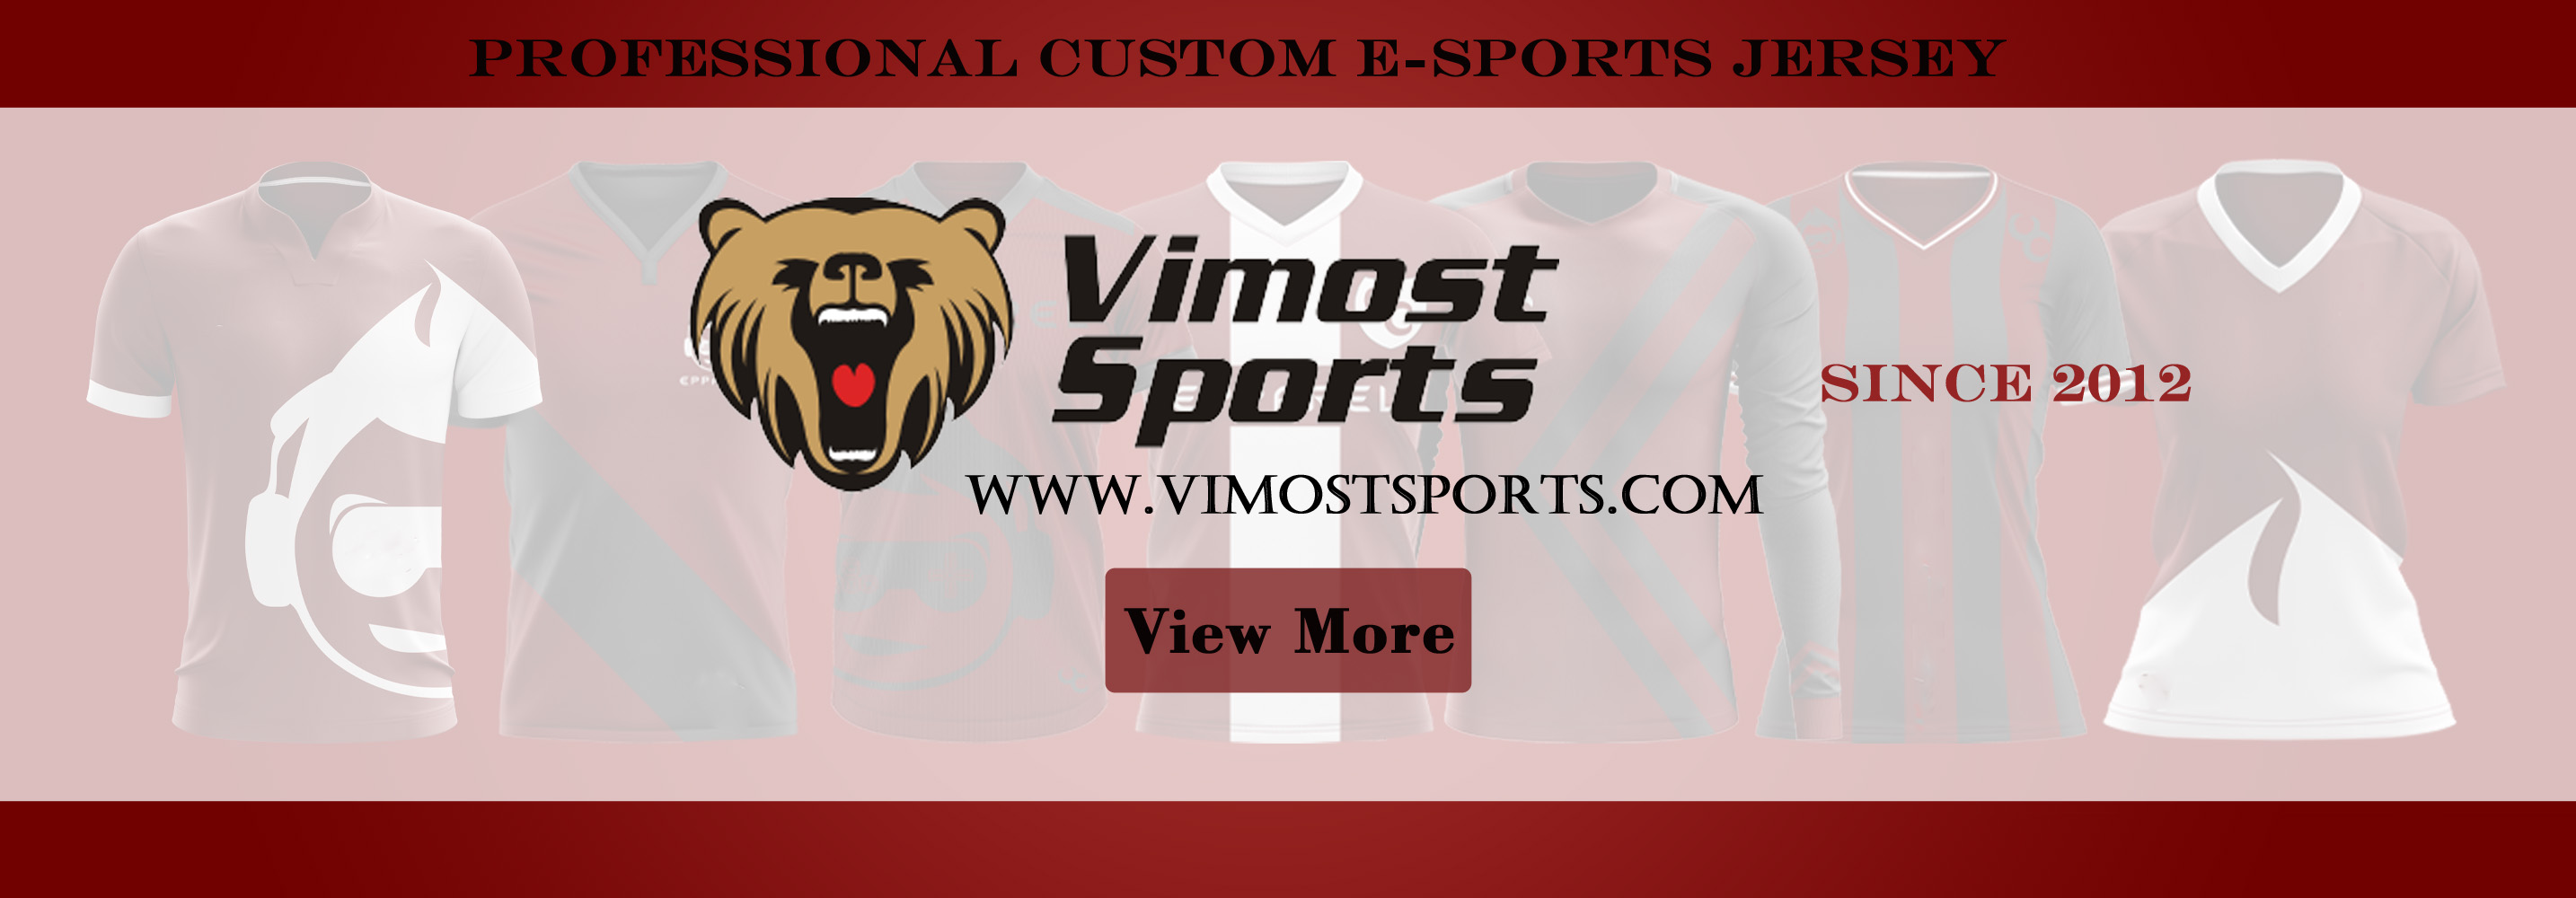 2020 Best custom high quality esports jersey 5